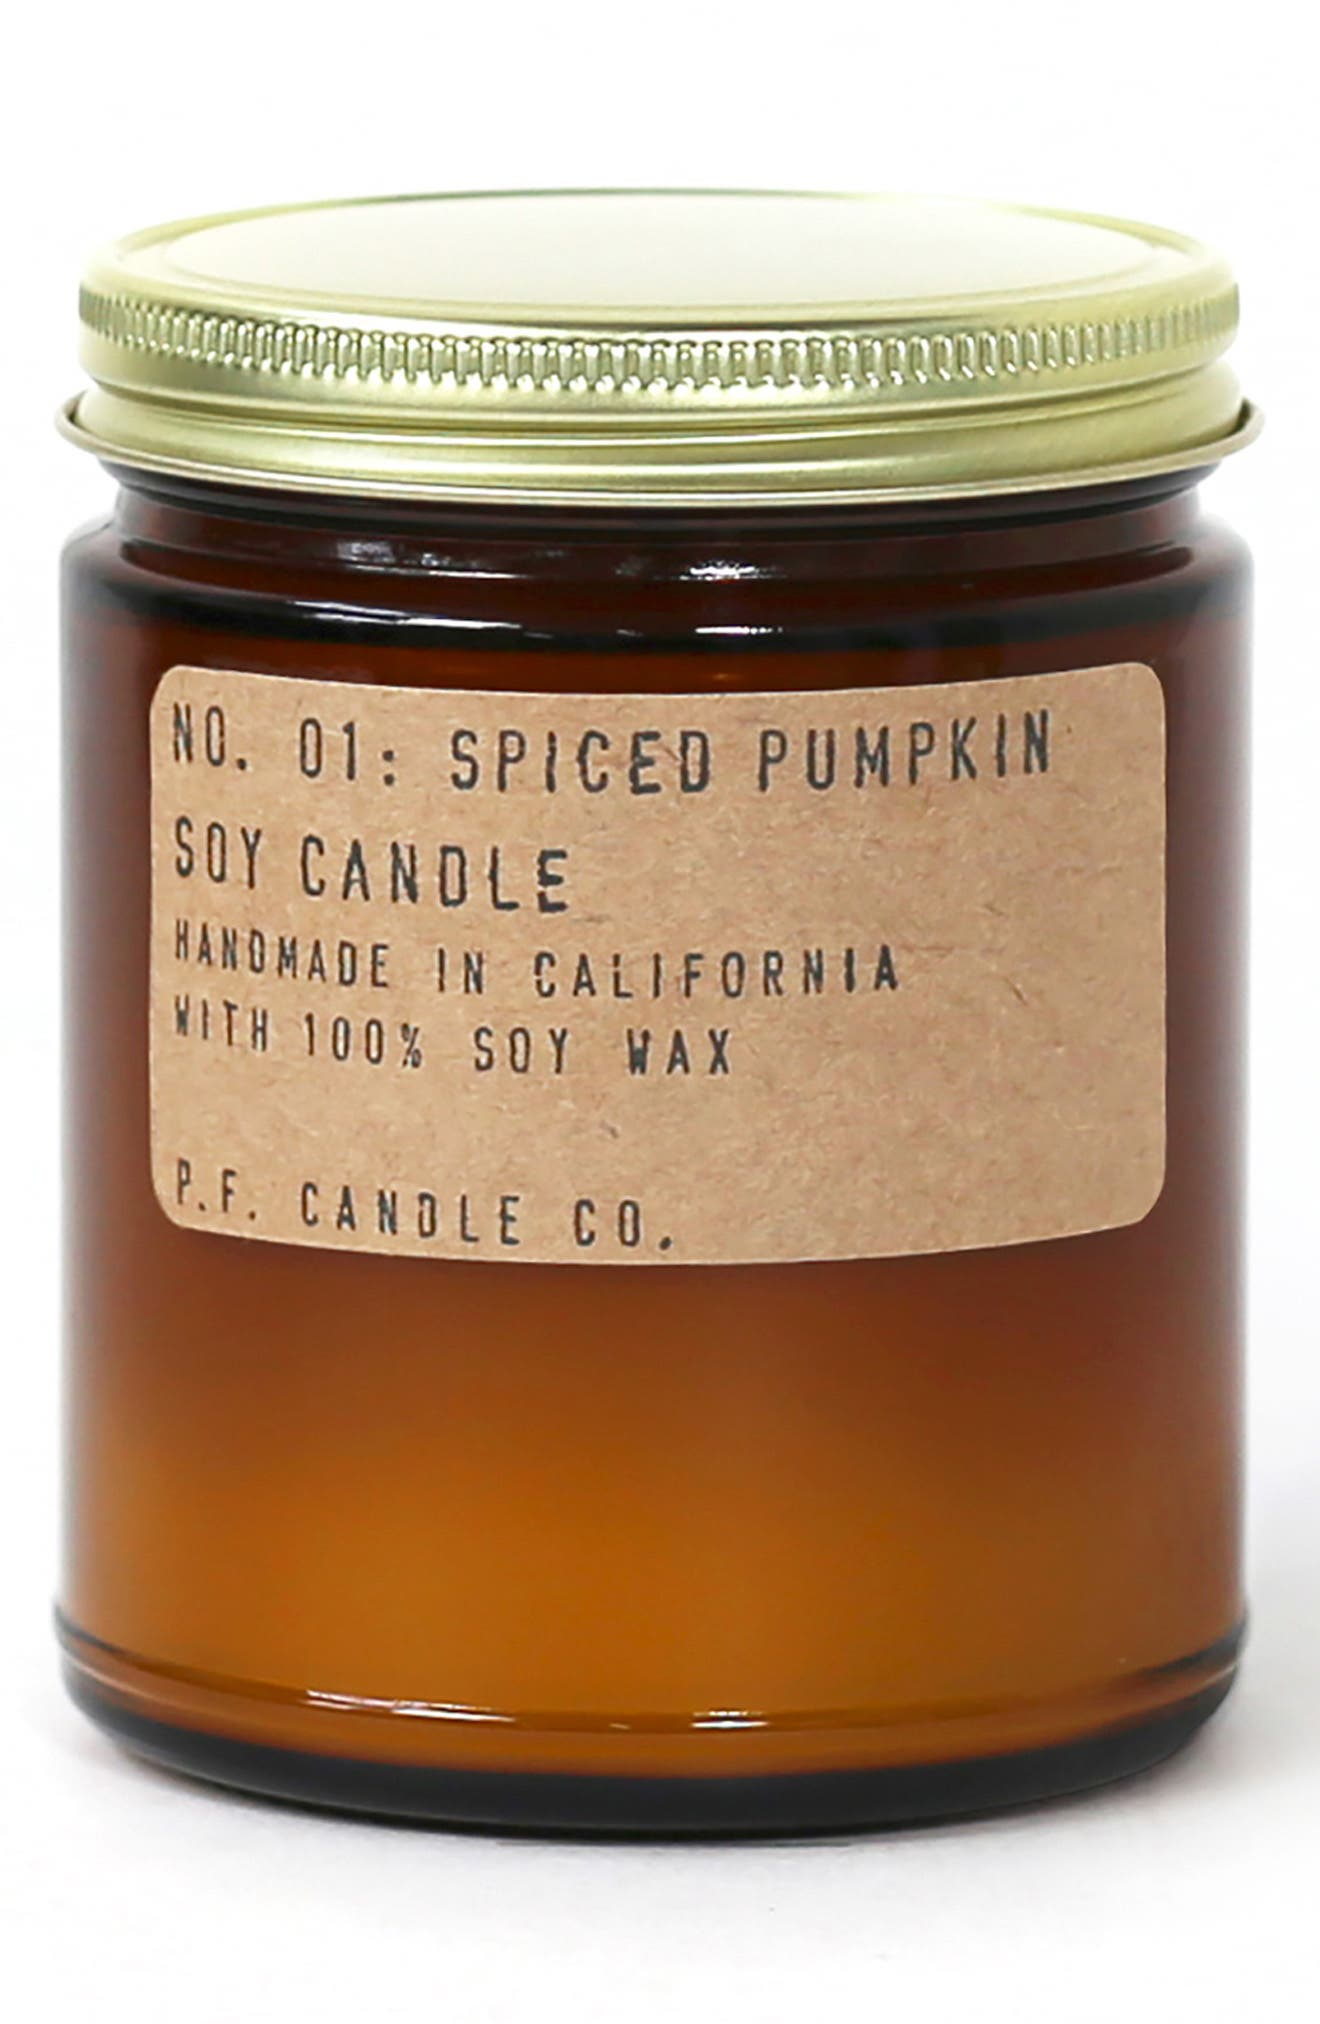 What it is: A limited-edition soy candle hand-poured into an apothecary inspired amber jar with a signature kraft label and brass lid. Fragrance story: Spiced Pumpkin fills your space with pumpkin pie with lots of butter, nutmeg, brown sugar and cinnamon. Style: Warm, spicy. Notes: Nutmeg, pumpkin, brown sugar, cinnamon. Style Name:P.f. Candle Co. Spiced Pumpkin Soy Candle (Limited Edition). Style Number: 5969482. Available in stores.